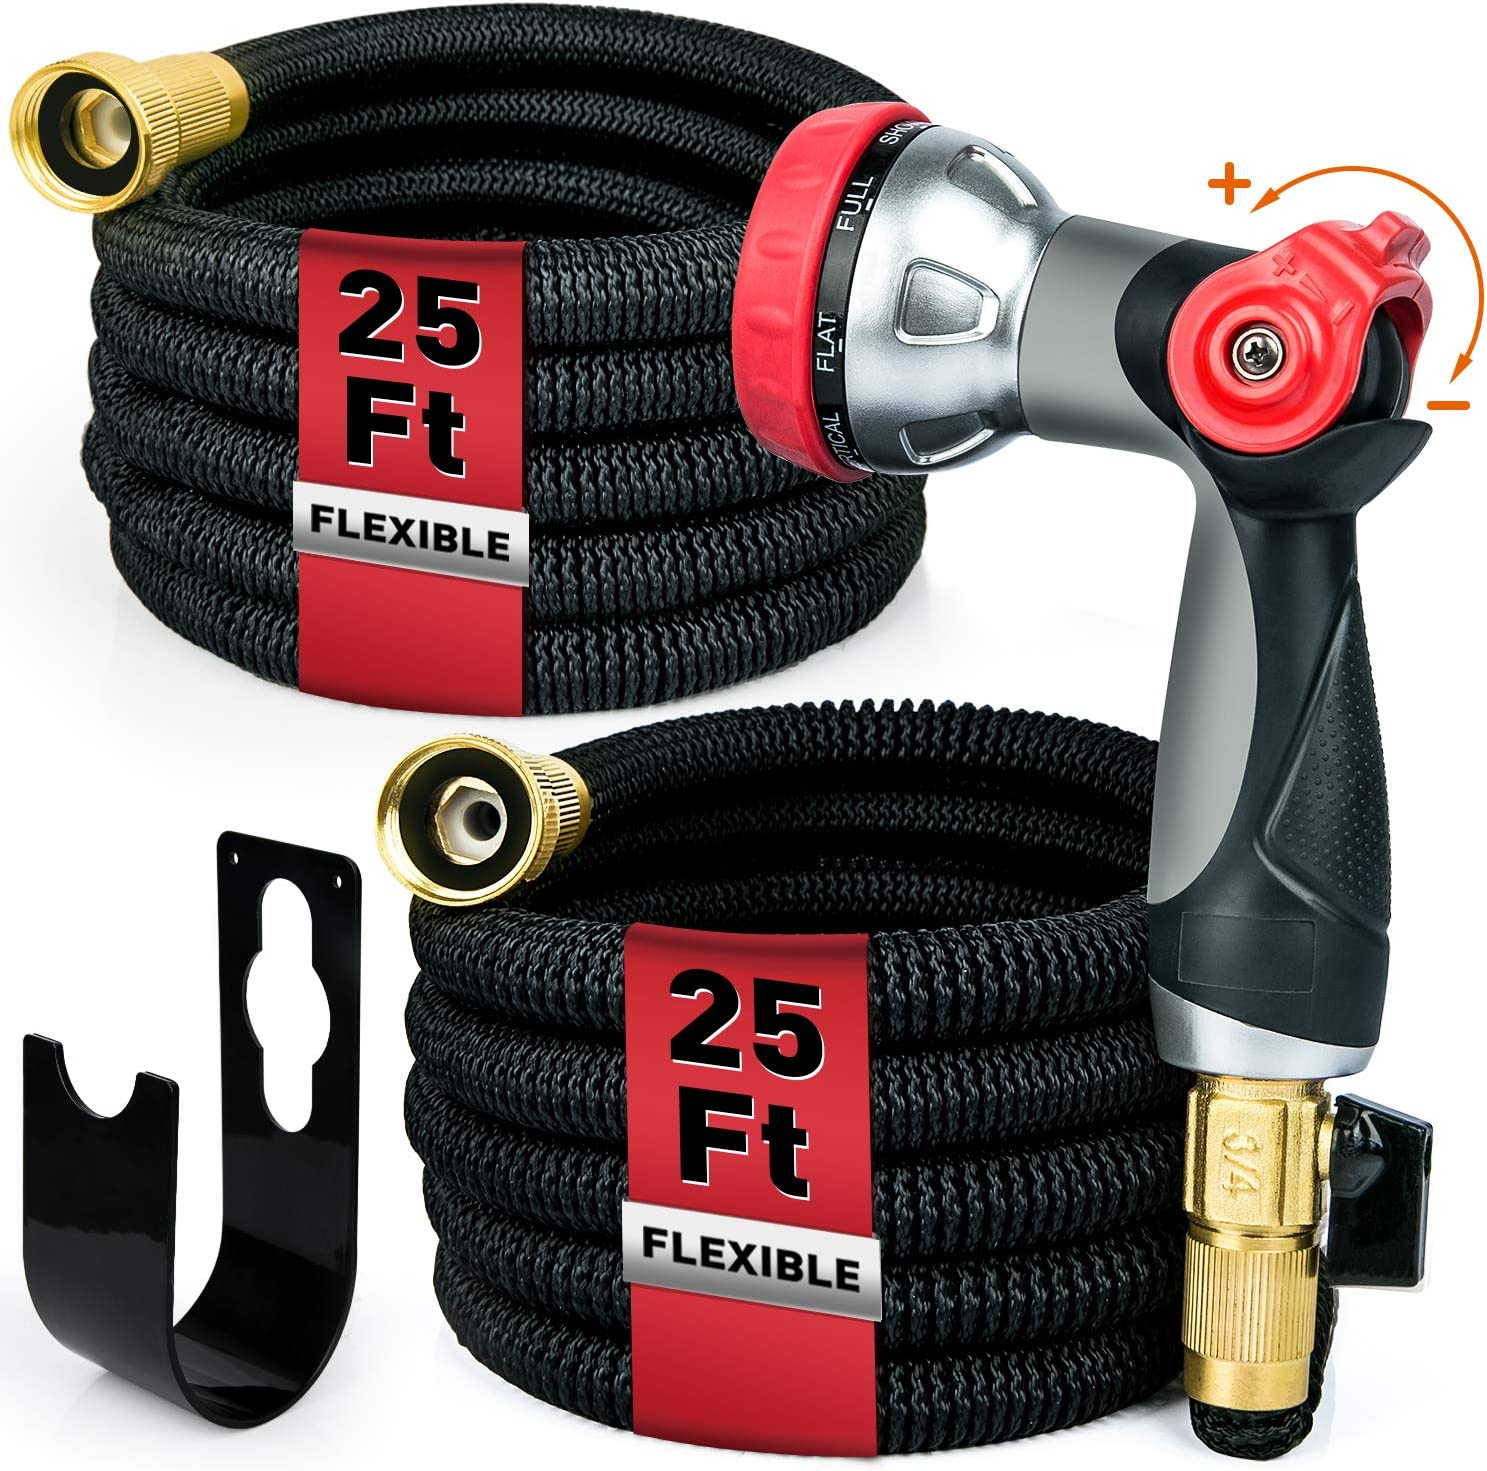 EOX Double 25ft Expandable Garden Hose with 8 Function Nozzle, Leakproof Lightweight Retractable Water Hose with Solid Brass Fittings, Extra Strength Durable Gardening Flexible Hose Pipe